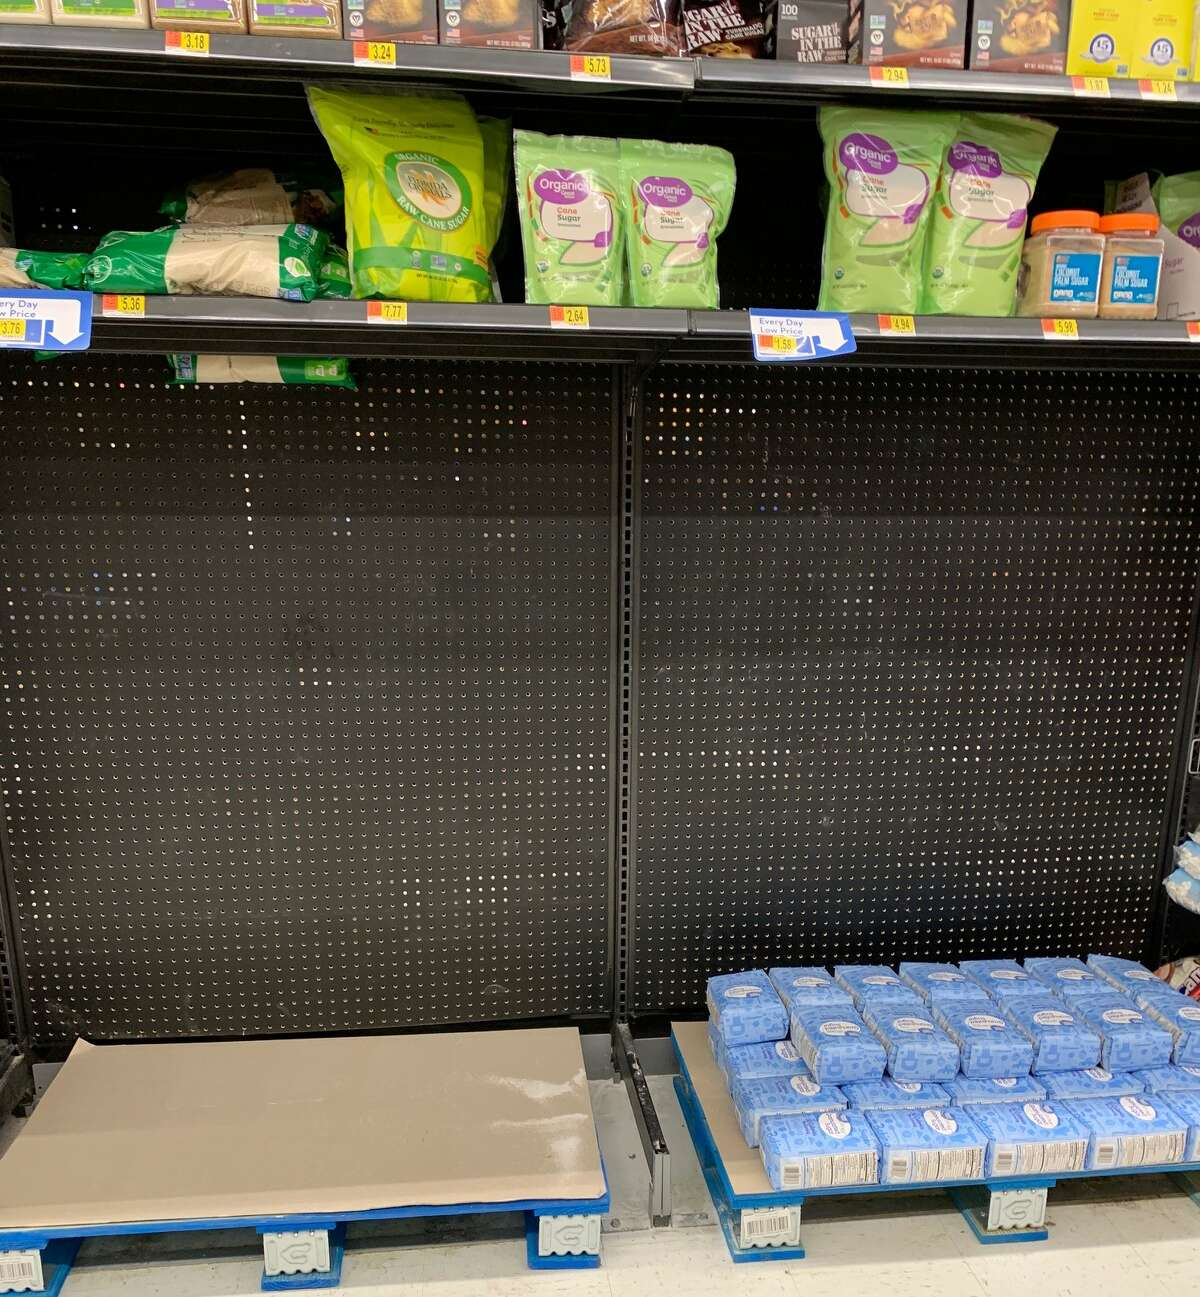 Local stores were selling out of toilet paper and disinfectant products, as well as other items Friday as shoppers prepared for a possible extended quarantine due to the coronavirus. Local stores were selling out of toilet paper and disinfectant products, as well as other items Friday as shoppers prepared for a possible extended quarantine due to the coronavirus.